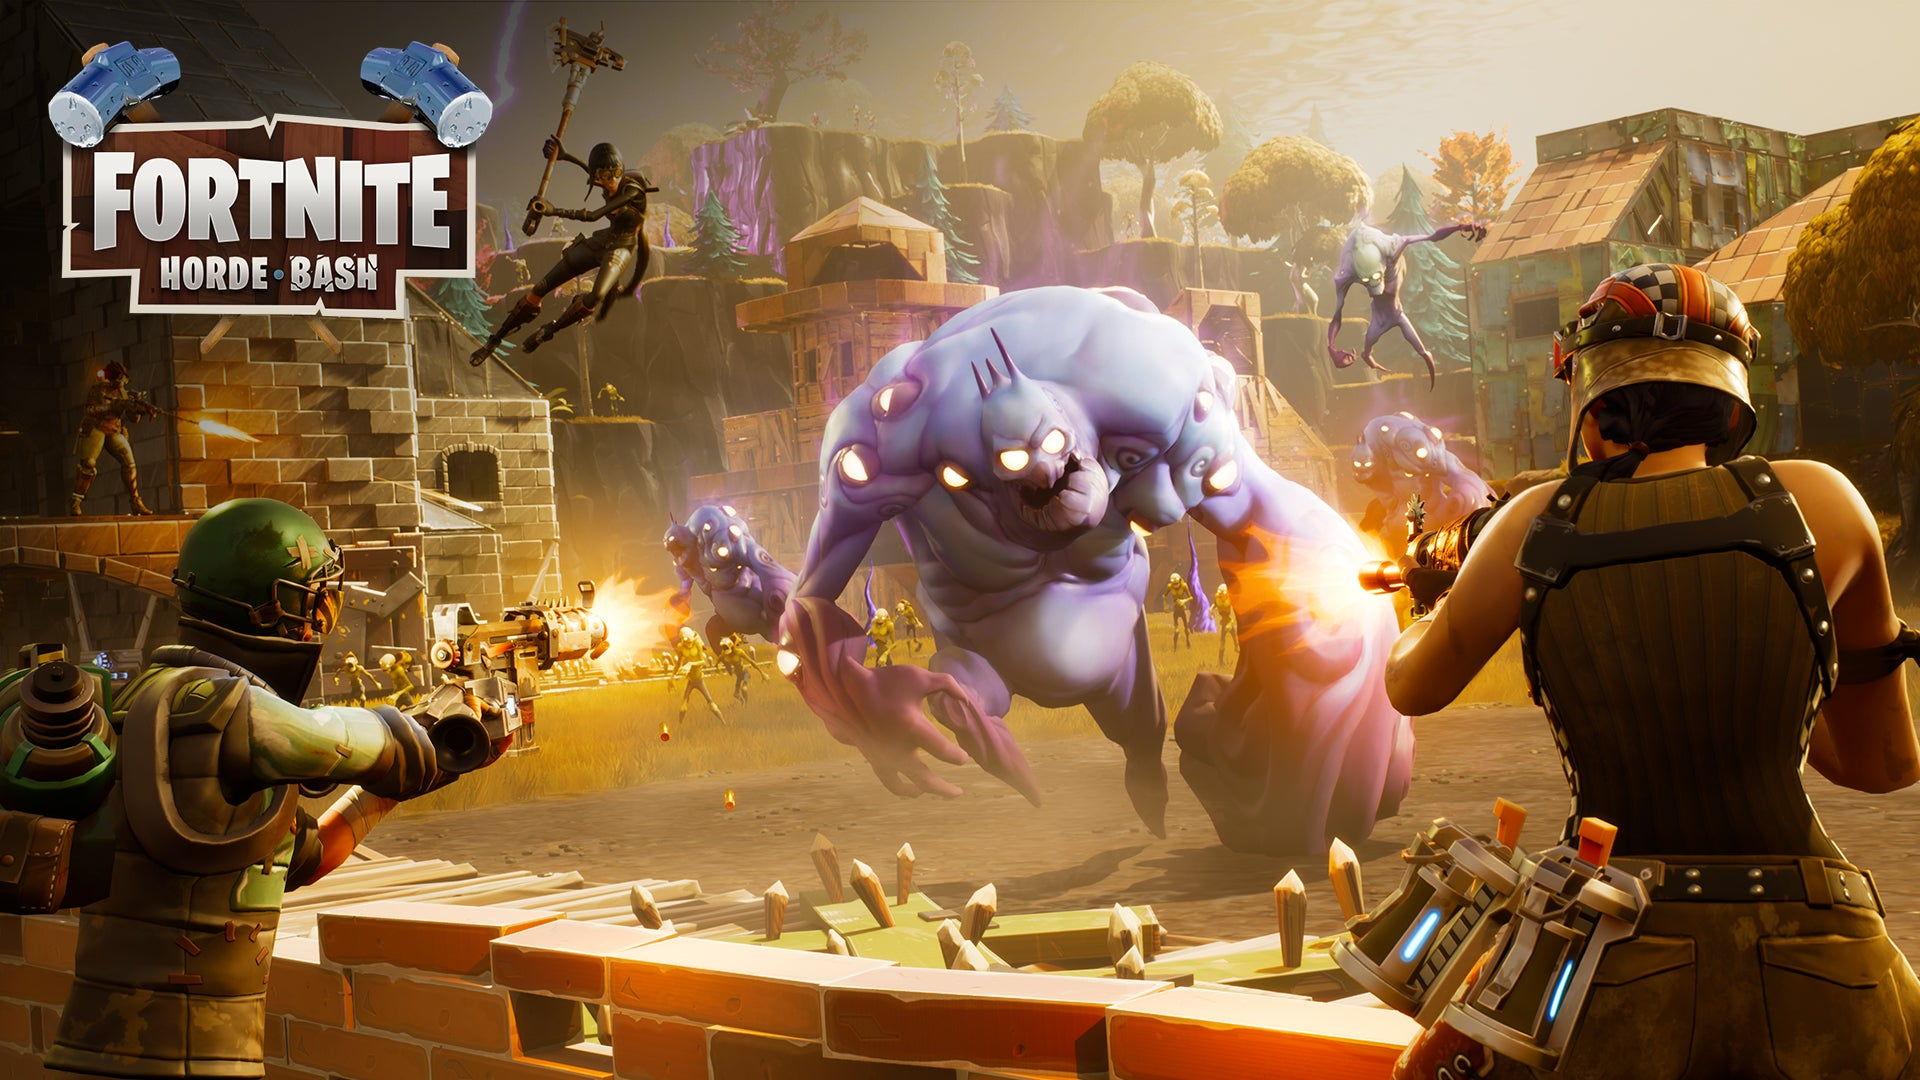 Fortnite Horde Bash Art